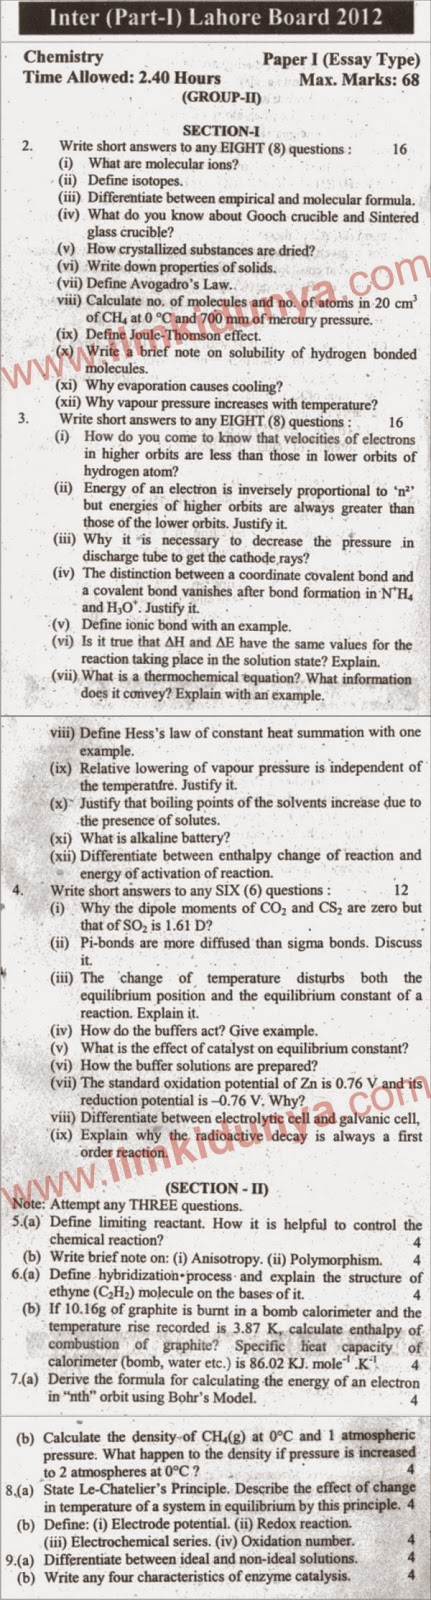 Lahore Board Chemistry Inter Part 1 Past Paper 2012 Subjective Group 2